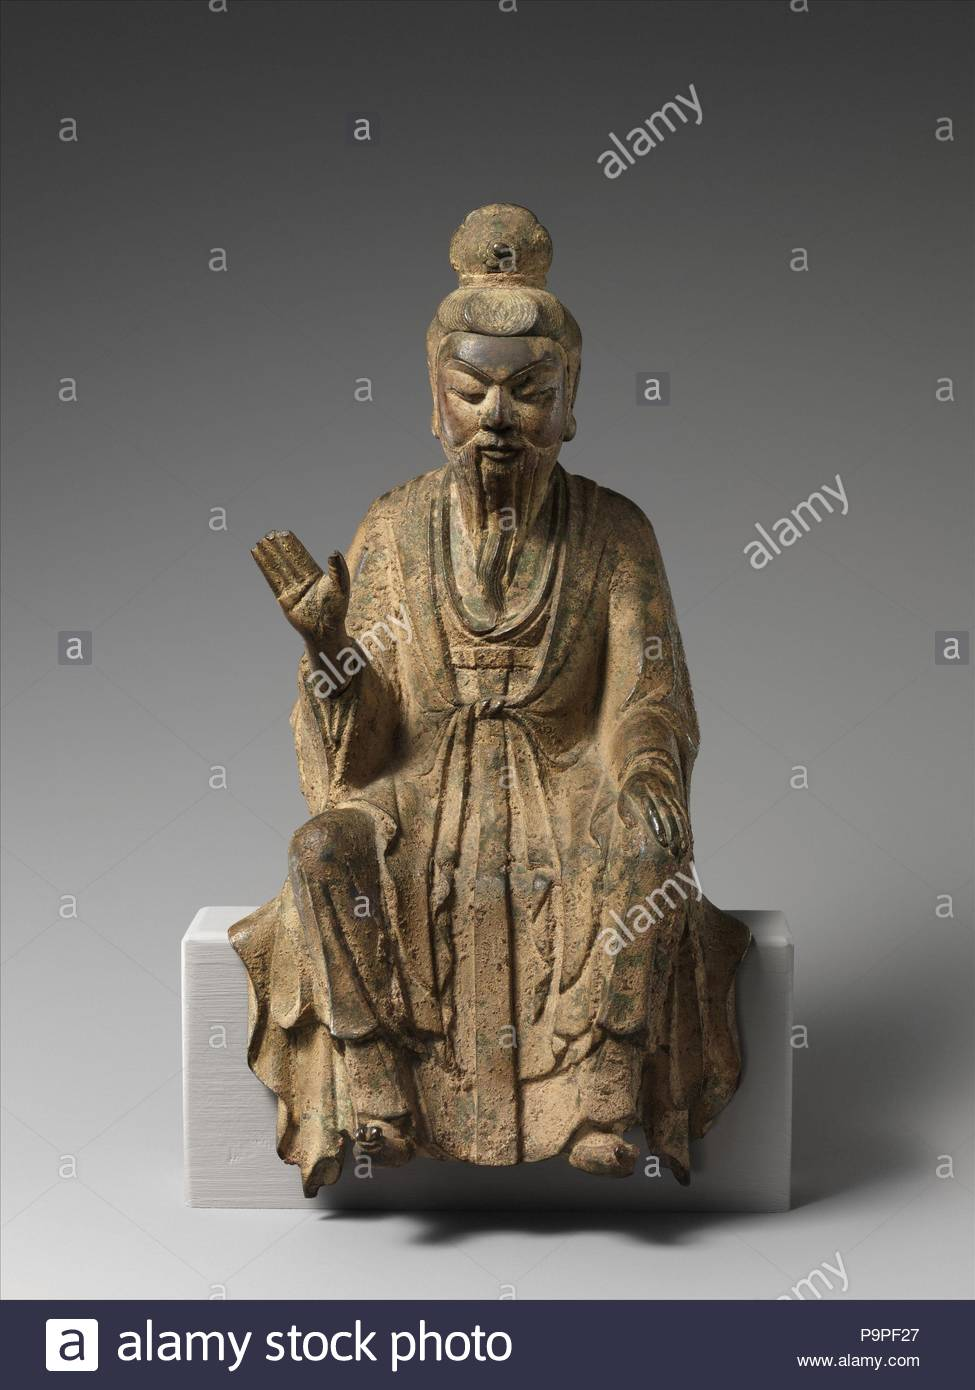 Daoist Immortal, probably Laozi (??), Five Dynasties period (907–60), 10th century, China, High-leaded bronze, H. 9 1/2 in. (24.1 cm); W. 4 1/2 in. (11.4 cm), Sculpture, This sculpture epitomizes the merging of religious and secular imagery in later Chinese Buddhist sculpture. With his shaven head and elongated earlobes, the figure resembles a luohan (one of the Indian disciples of the Buddha), but his refined facial features, dignified posture, long-sleeved robe, and pointed shoes—all attributes associated with Confucian scholar-officials—identify him unmistakably as a youthful monk. - Stock Image